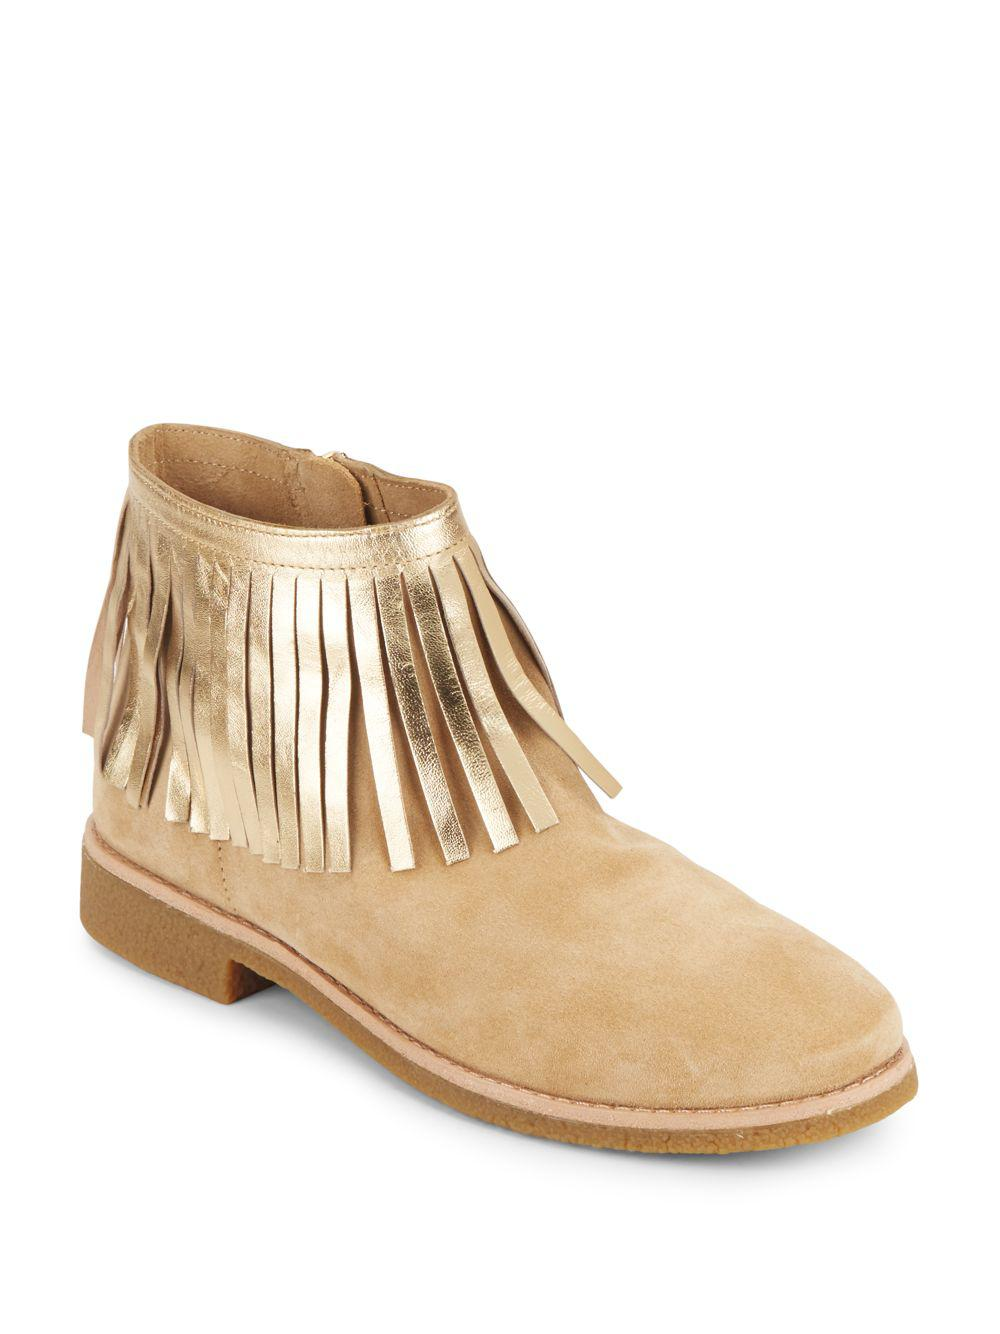 8d537a7019e6 Lyst - Kate Spade Betsie Too Metallic-fringed Suede Ankle Boots